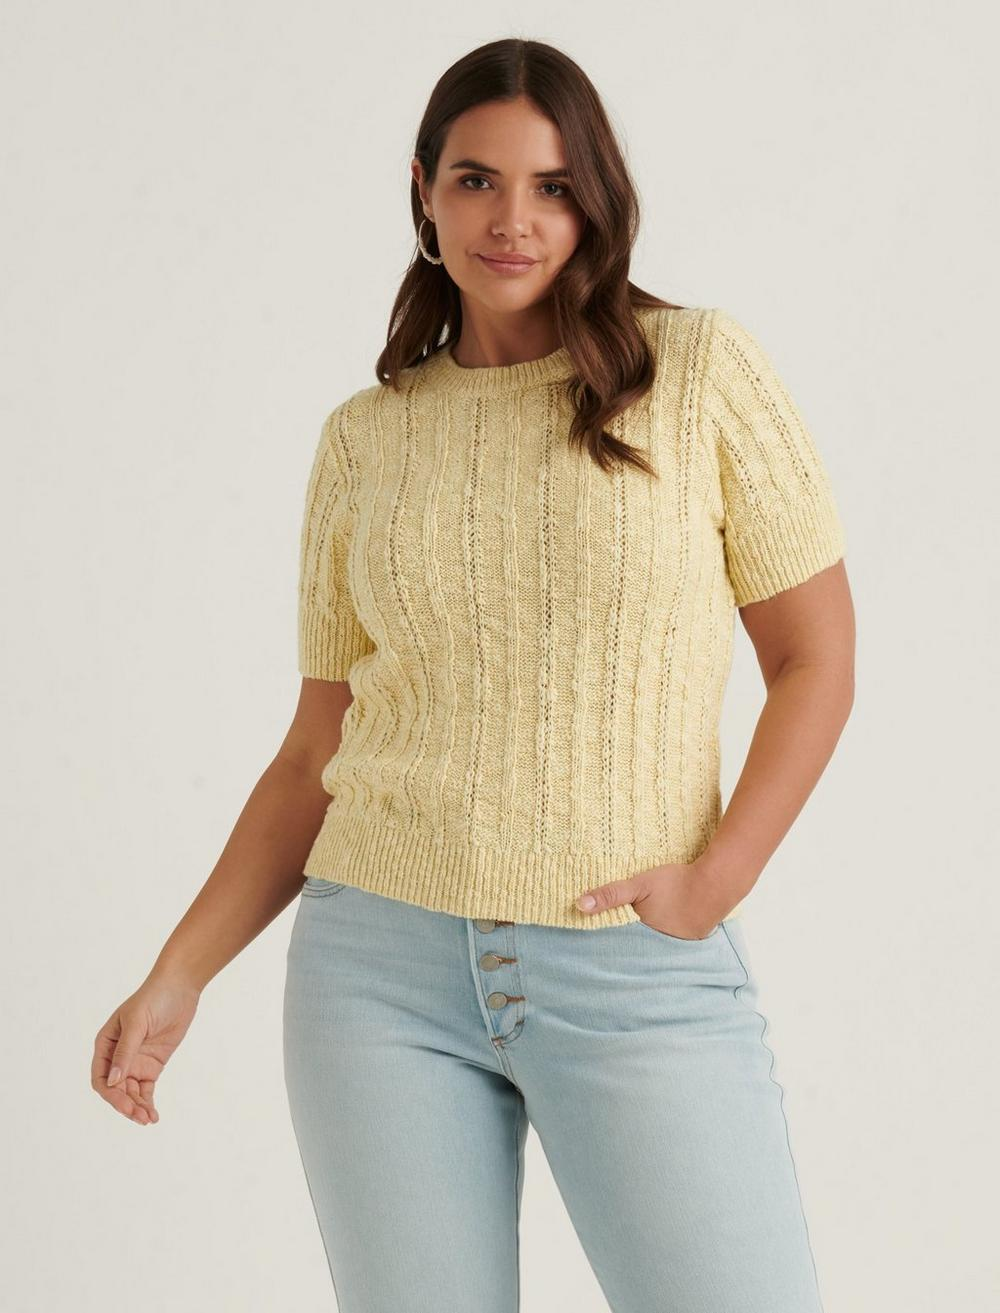 LIGHTWEIGHT SHORT SLEEVE CABLE SWEATER, image 5